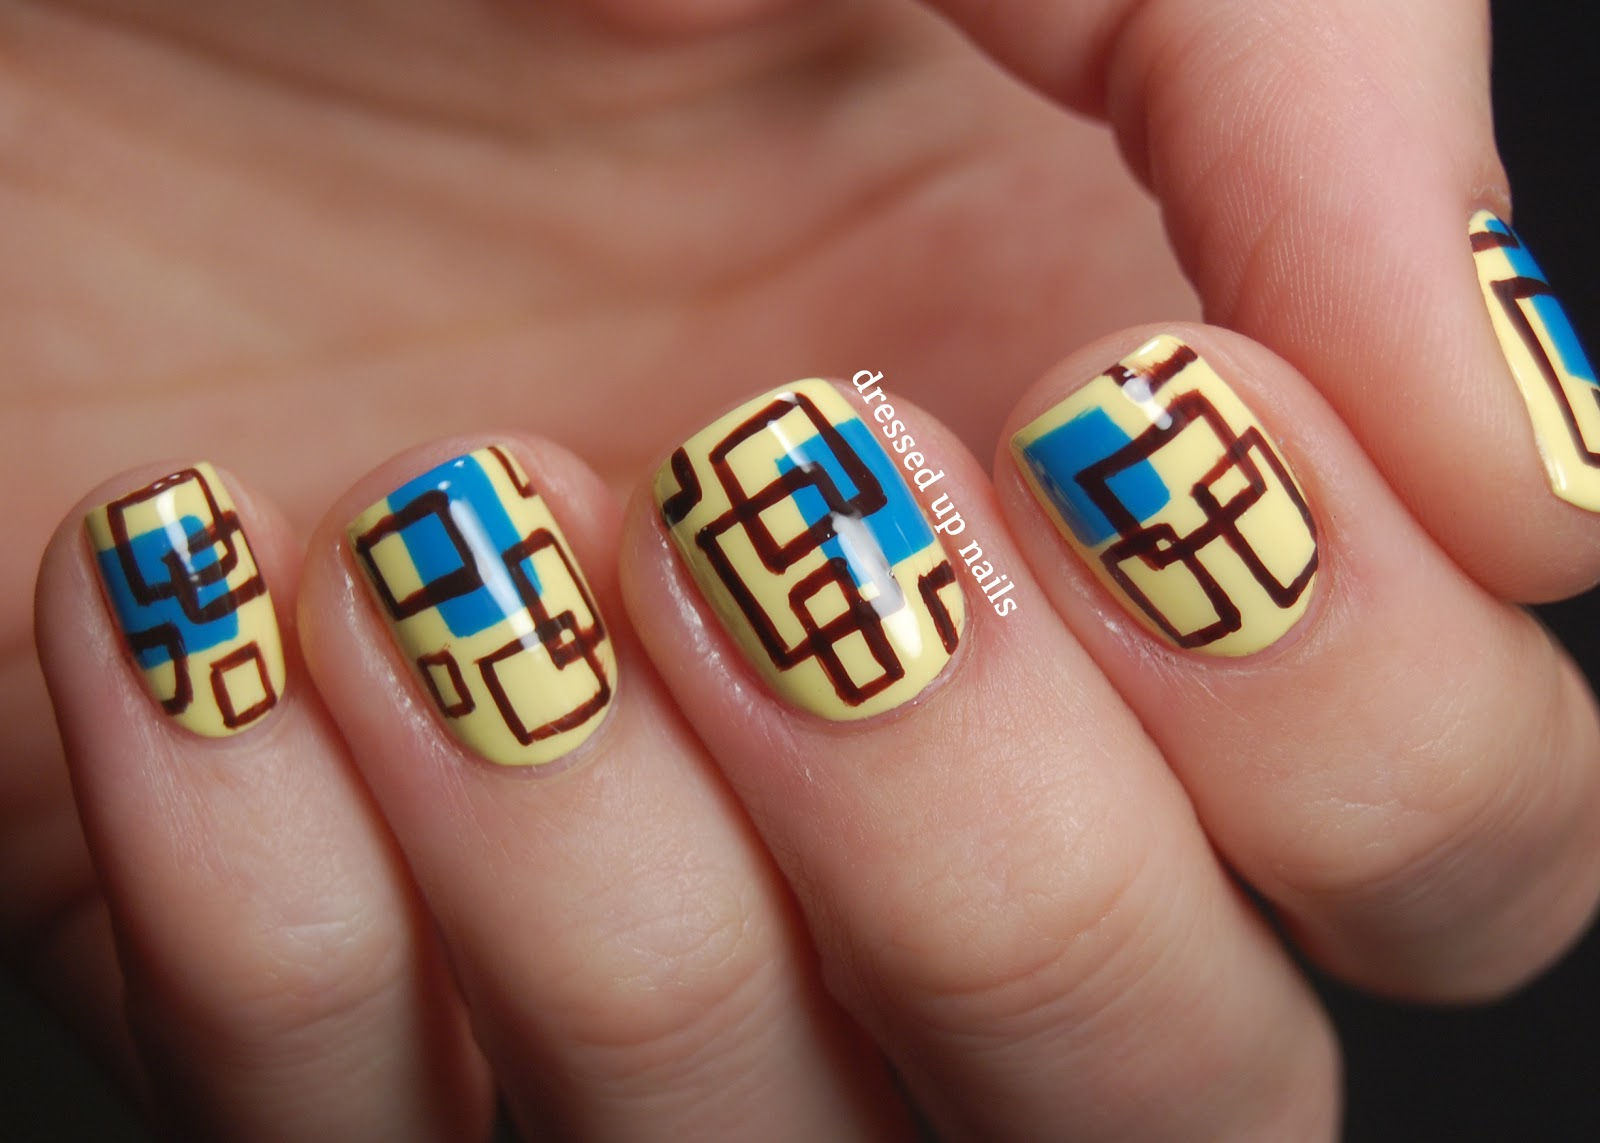 NailArt 101: Superb Nails Art Design